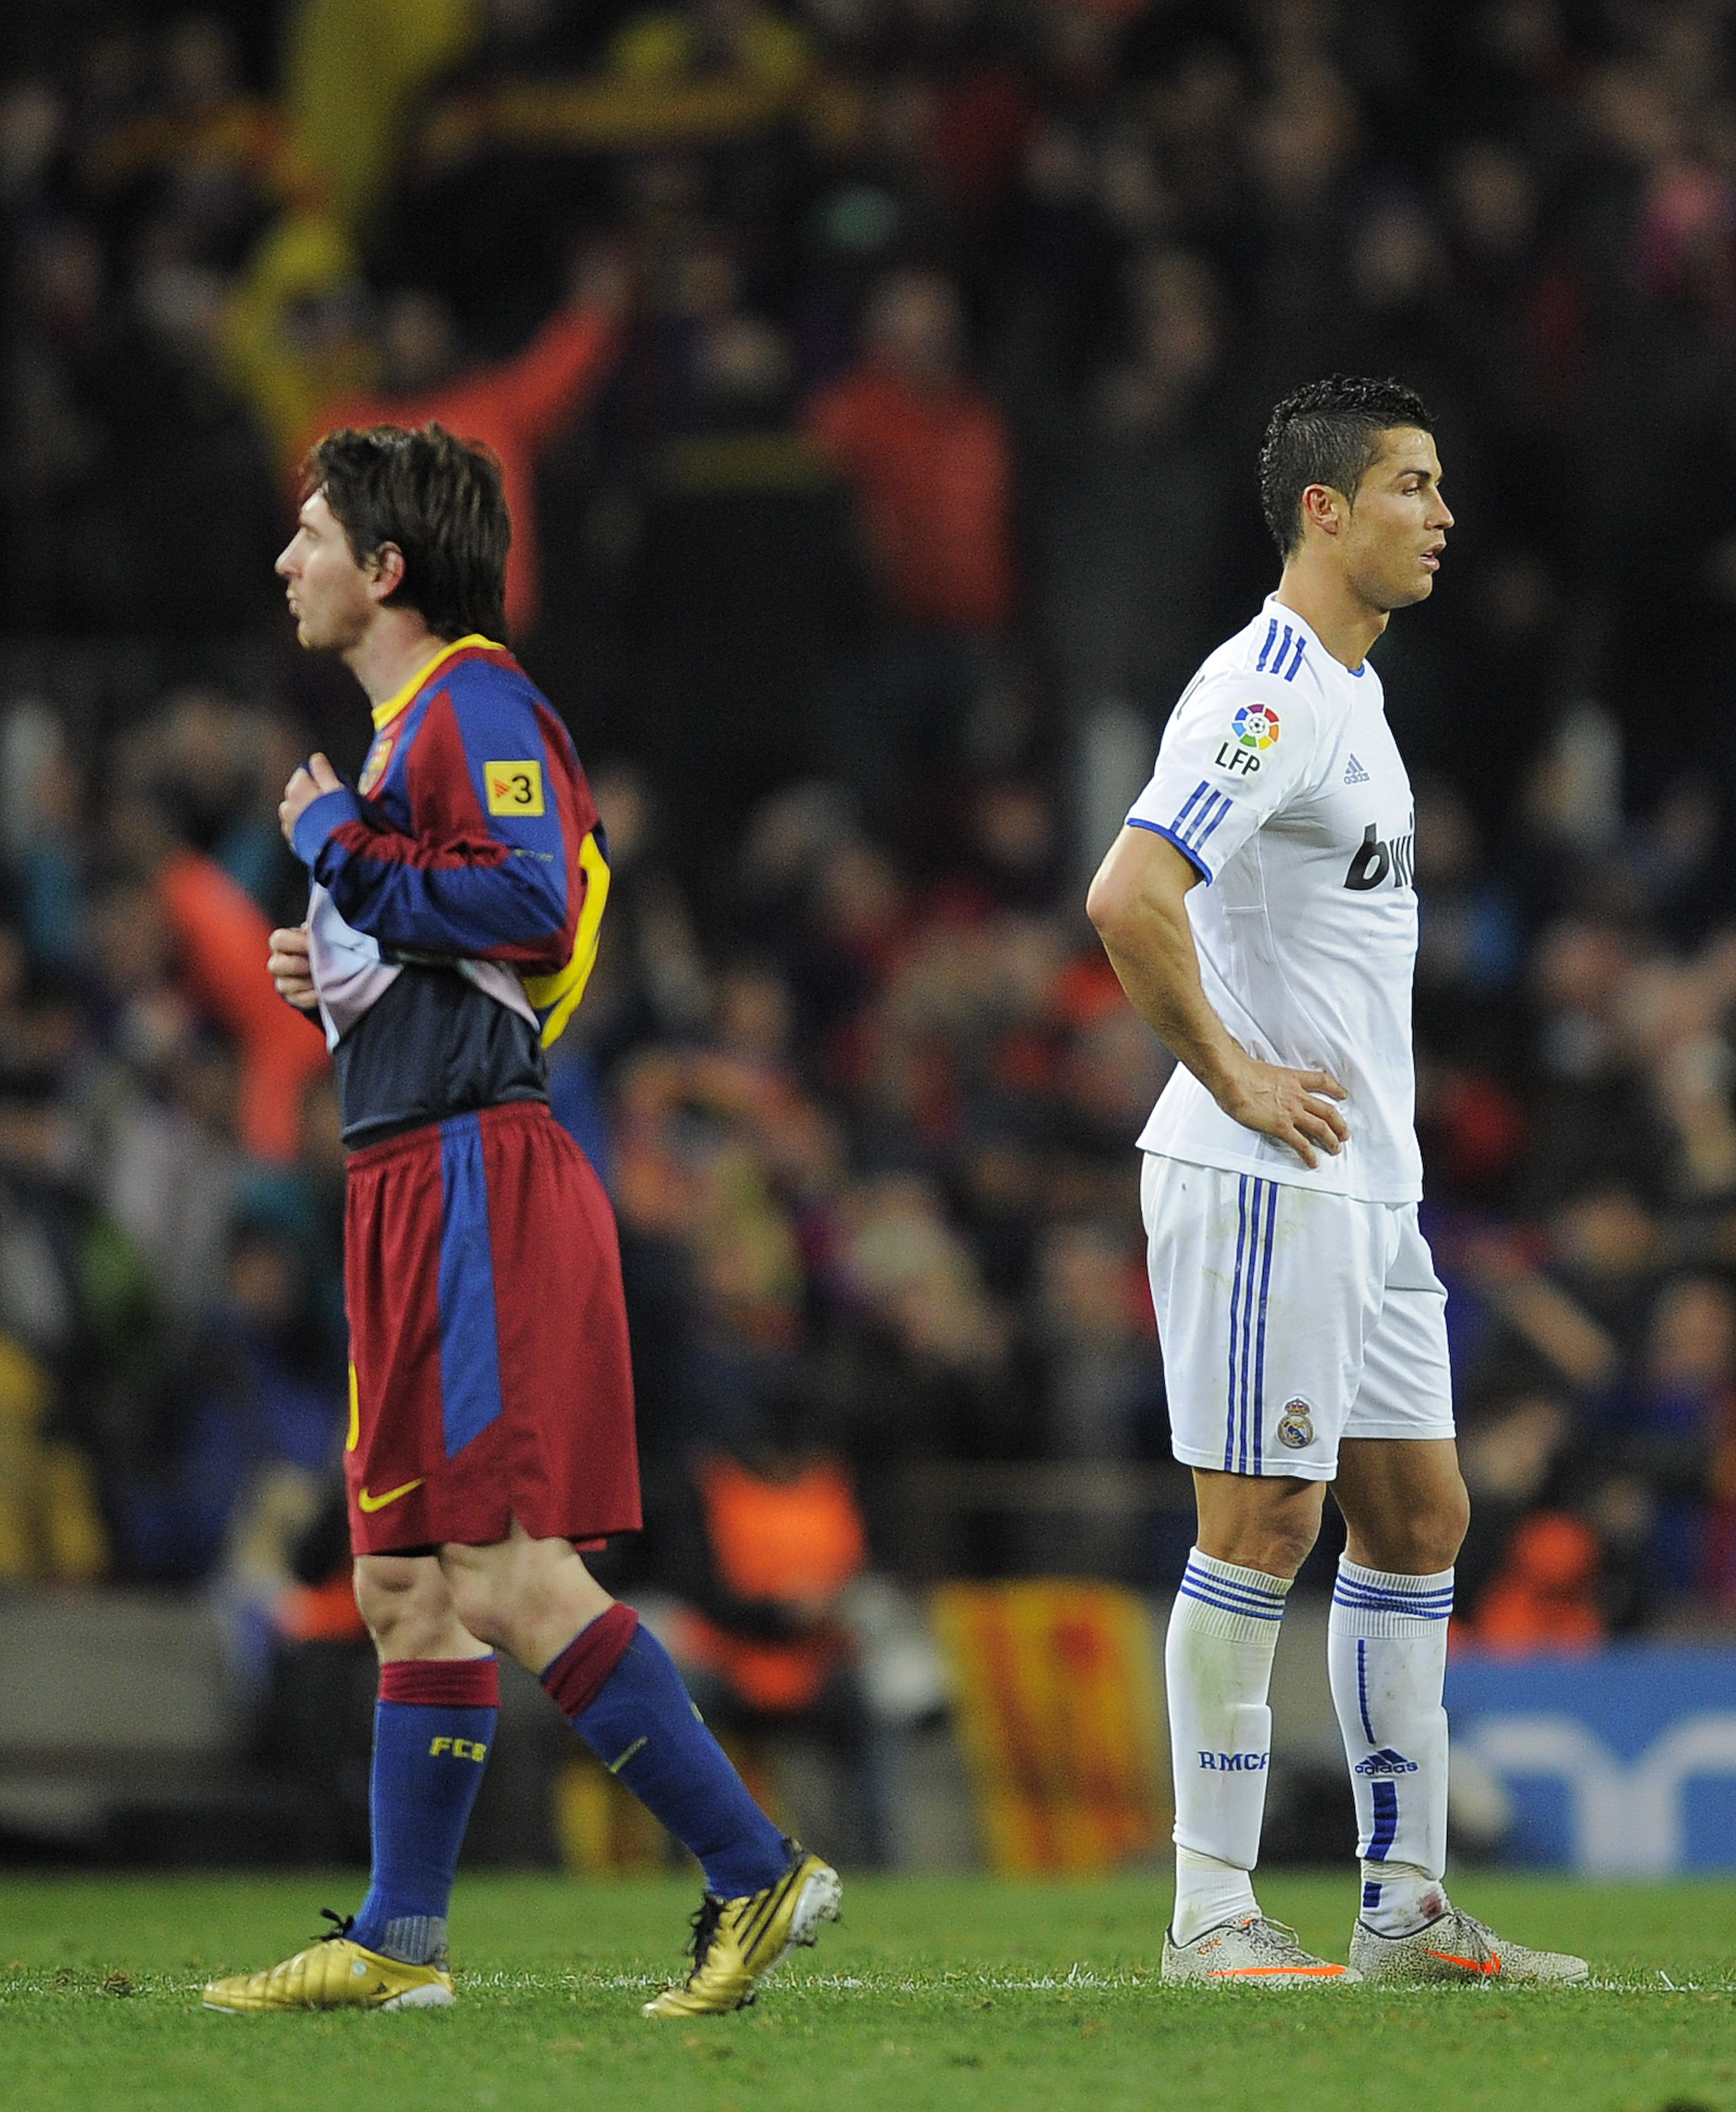 BARCELONA, SPAIN - NOVEMBER 29:  Cristiano Ronaldo of Real Madrid (R) and Lionel Messi of FC Barcelona look on during the La Liga match between Barcelona and Real Madrid at the Camp Nou Stadium on November 29, 2010 in Barcelona, Spain.  Barcelona won the